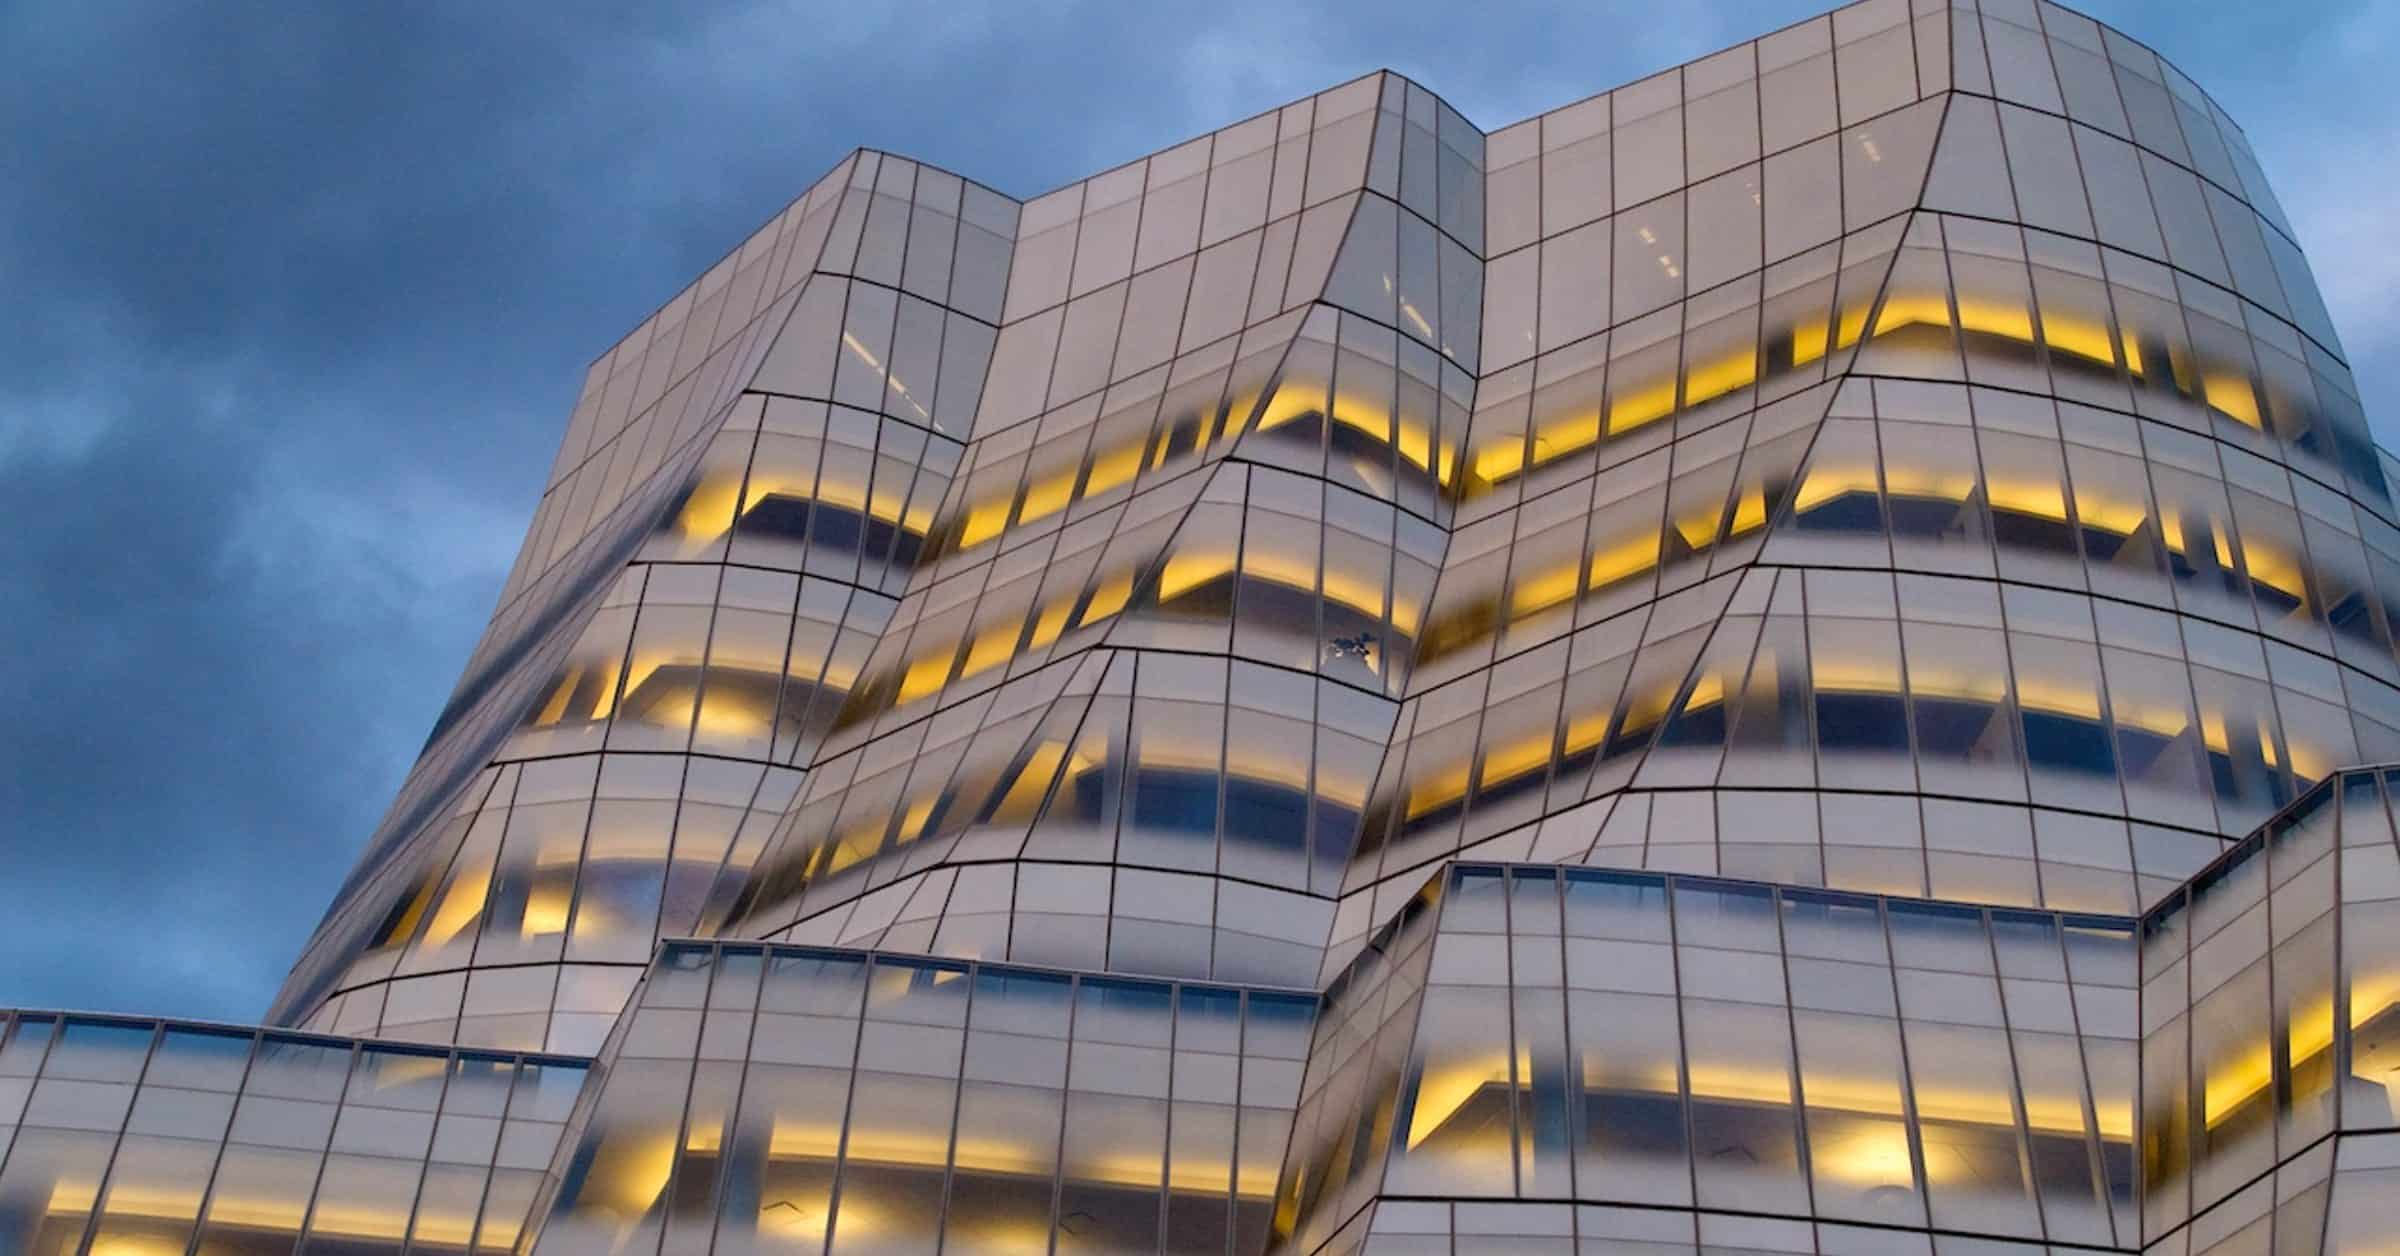 Frank Gehry's IAC Building - Photo via Waywuwei on Flickr